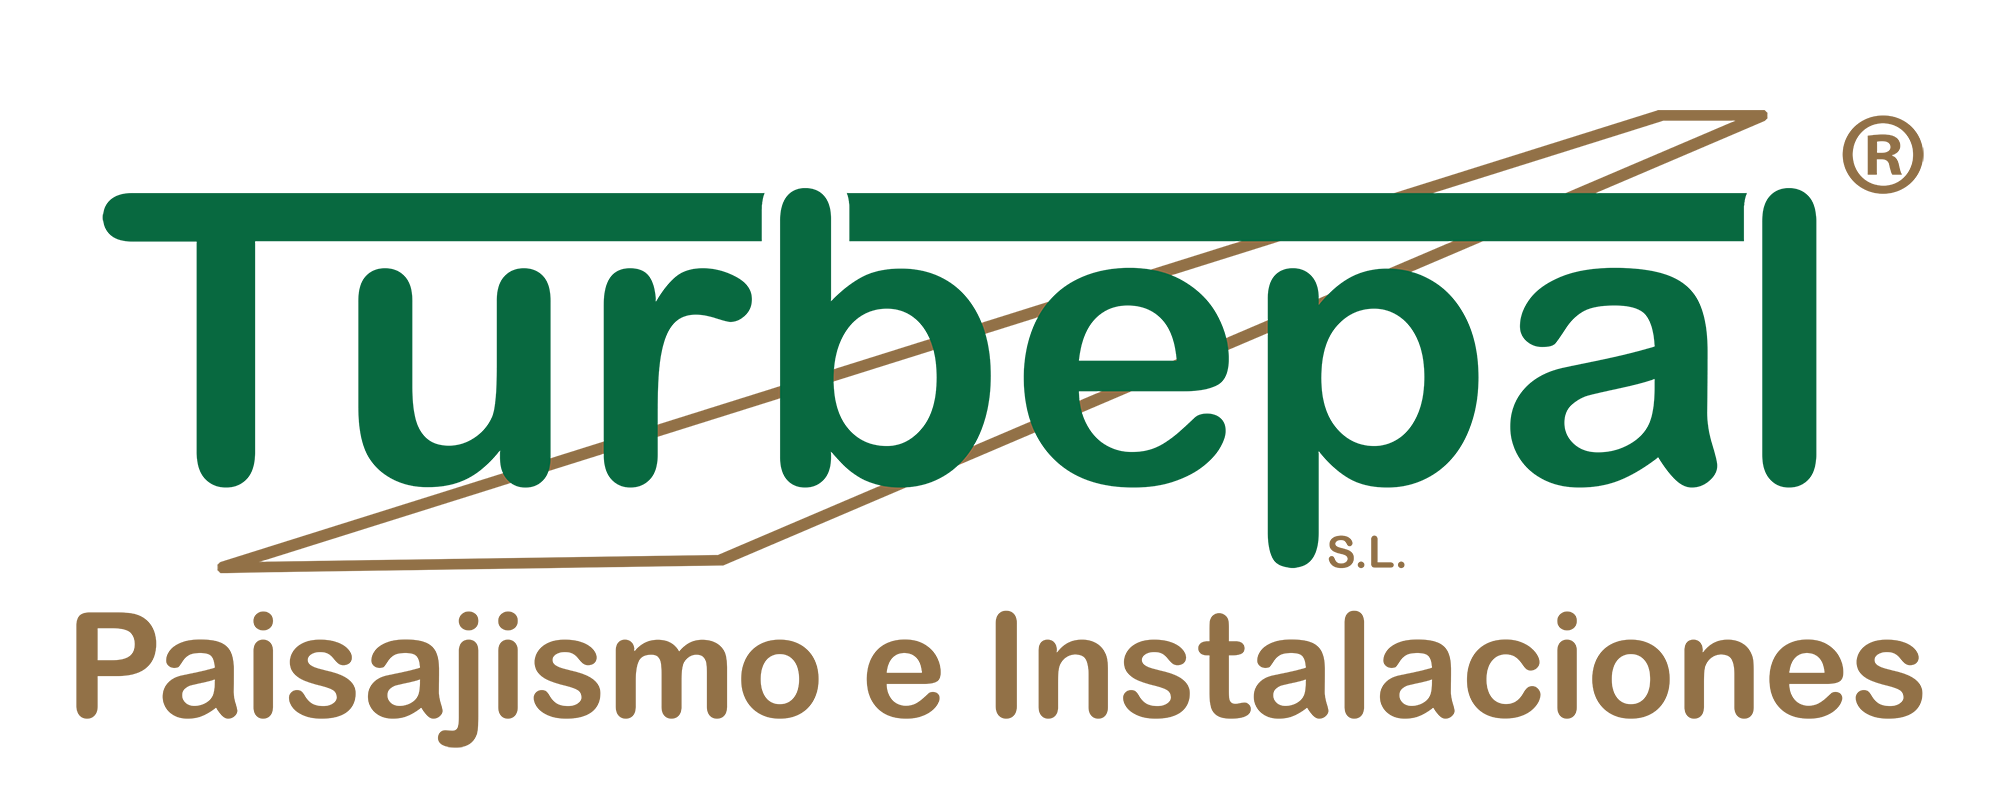 cropped-LOGO-TURBEPAL-1.png